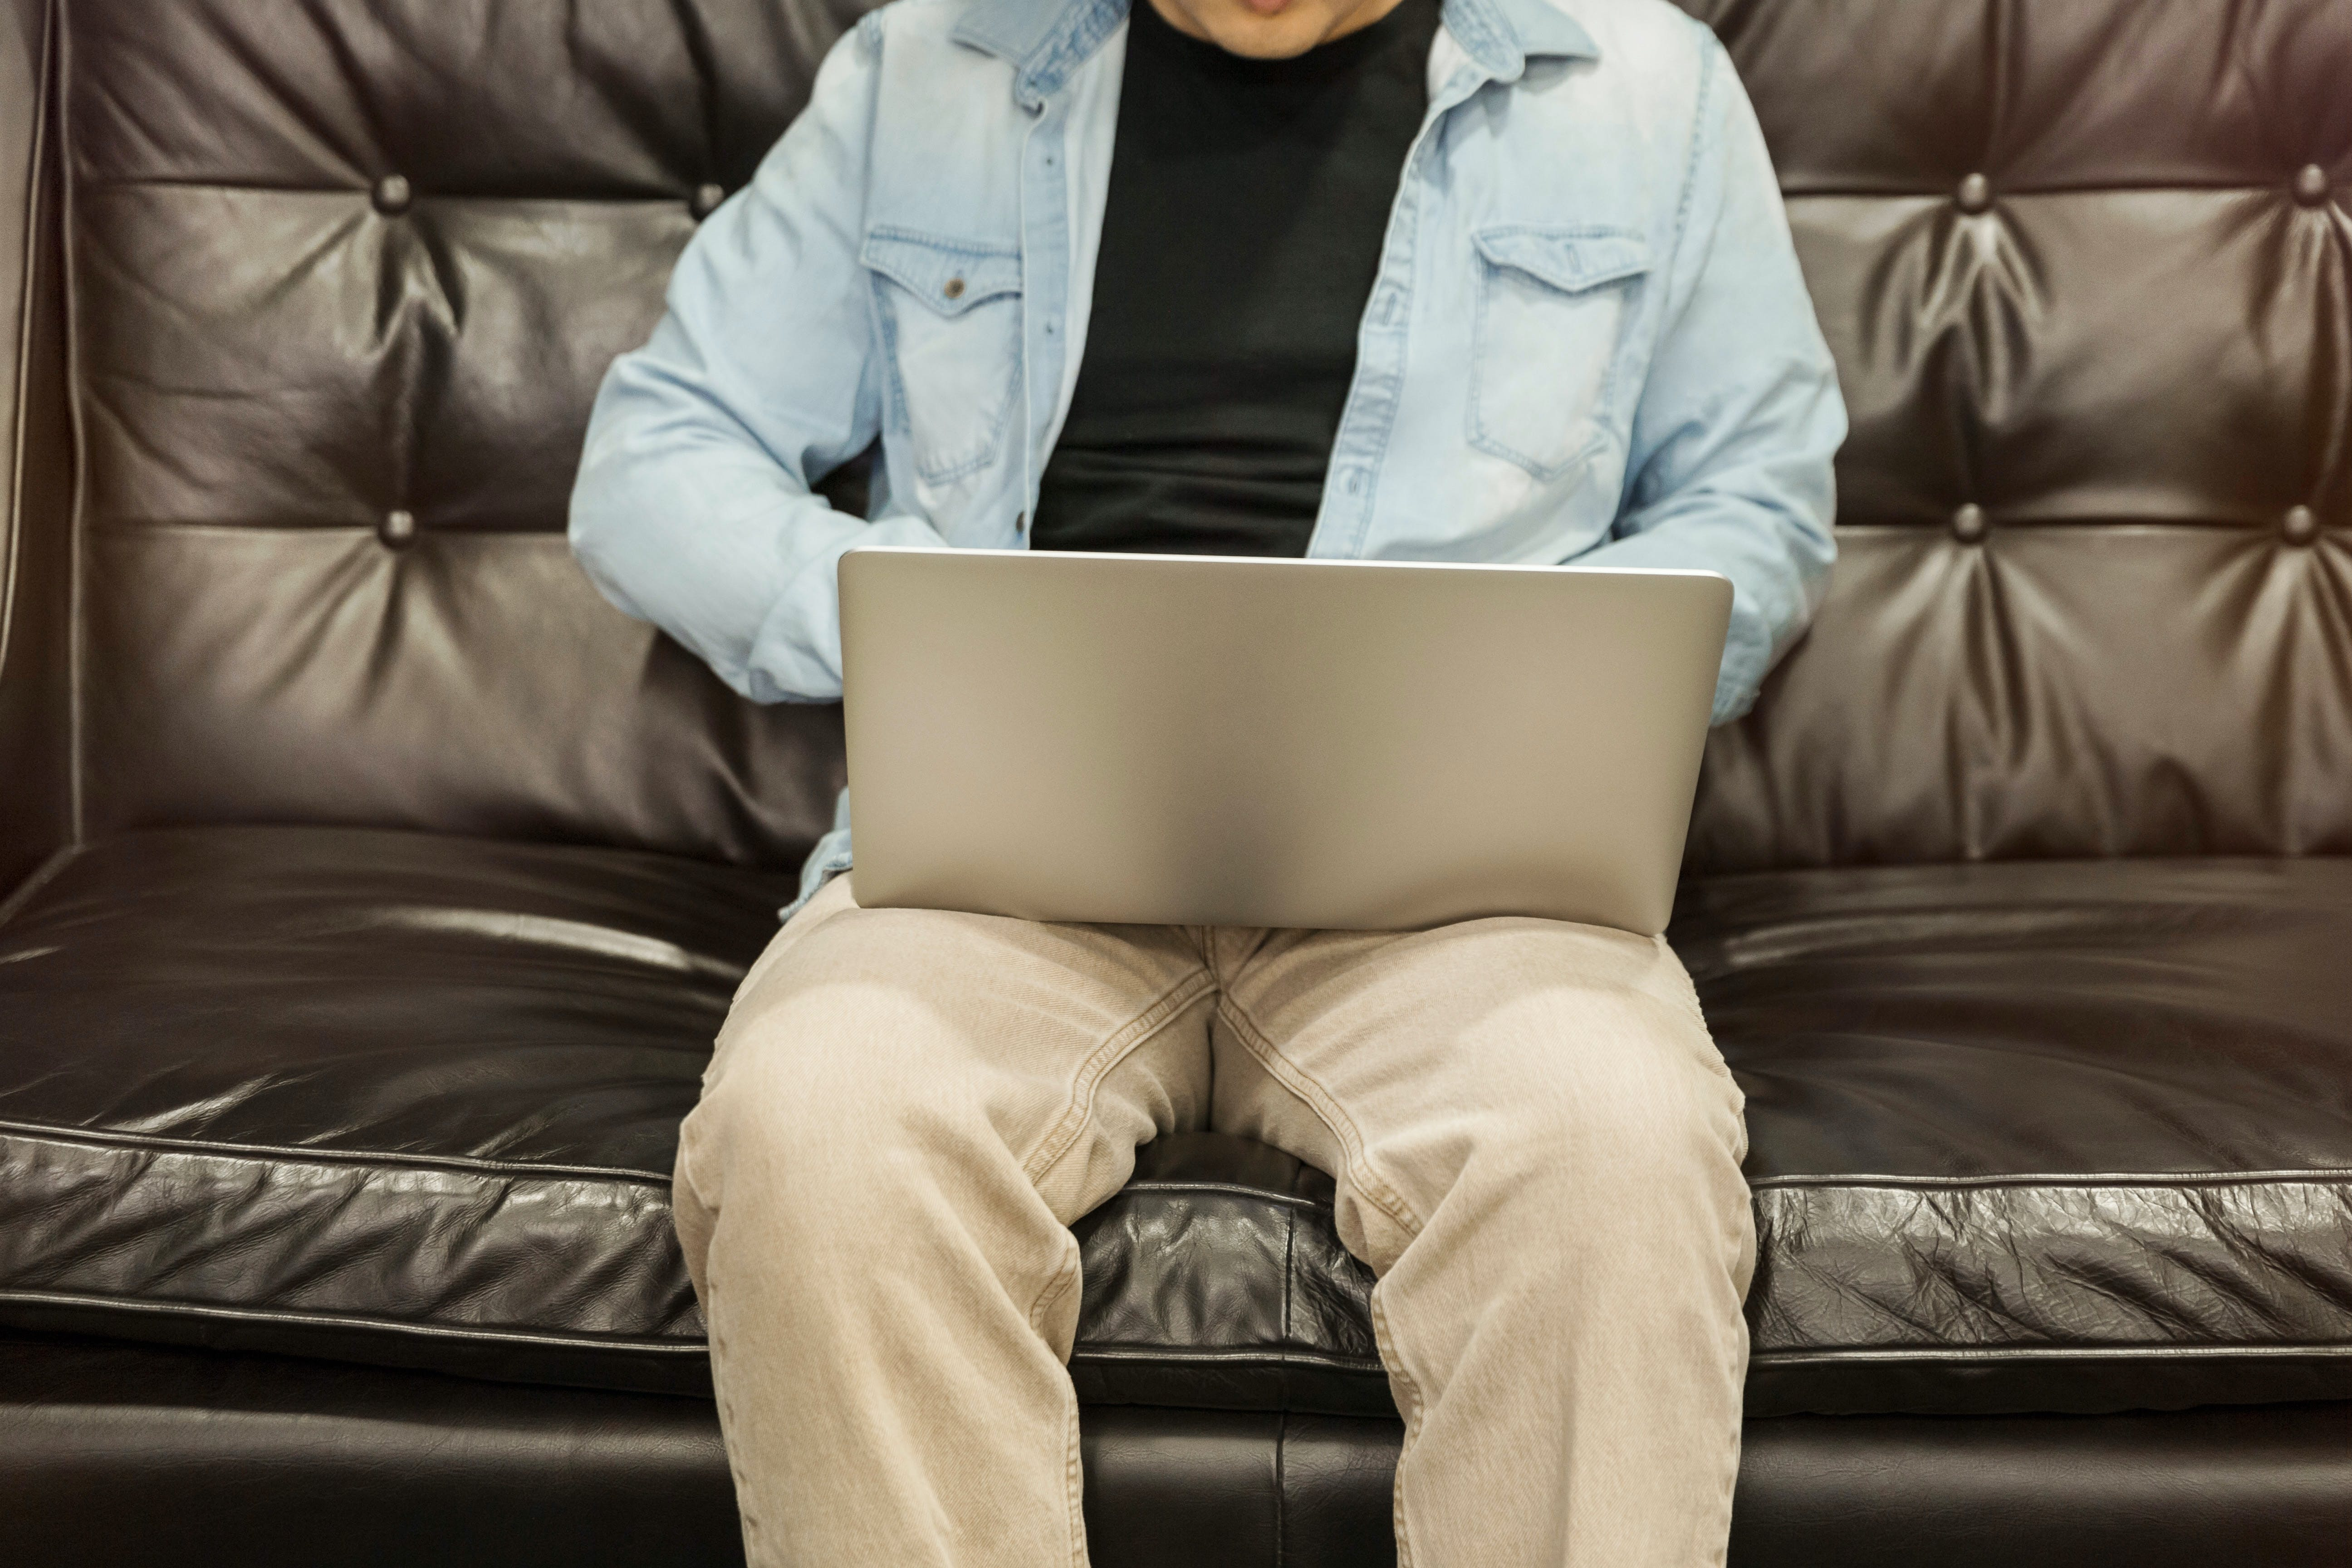 Photography of Man Using Laptop